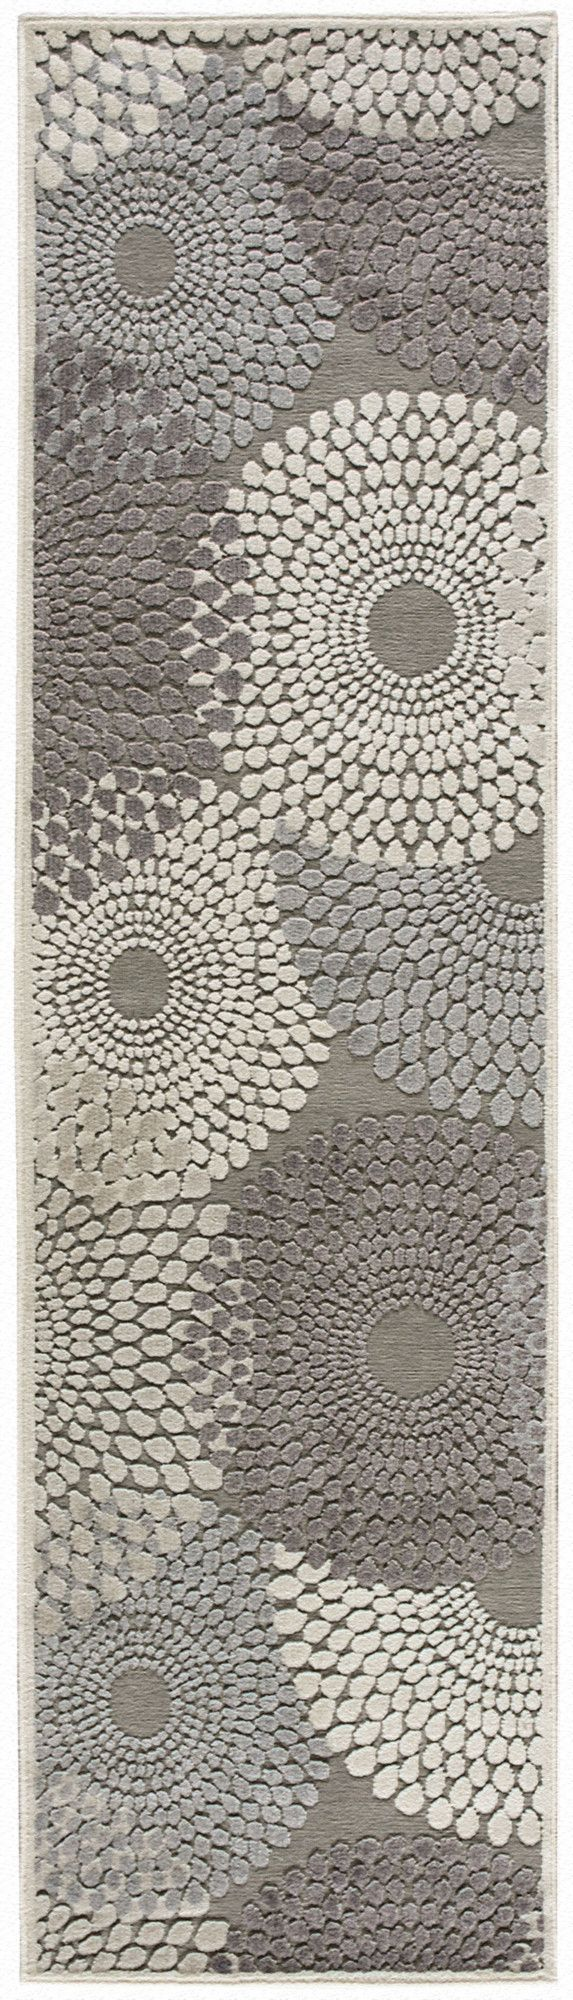 Best Bathroom Mat Ideas On Pinterest Bath Rugs Mats Bath - Patterned bath mat for bathroom decorating ideas